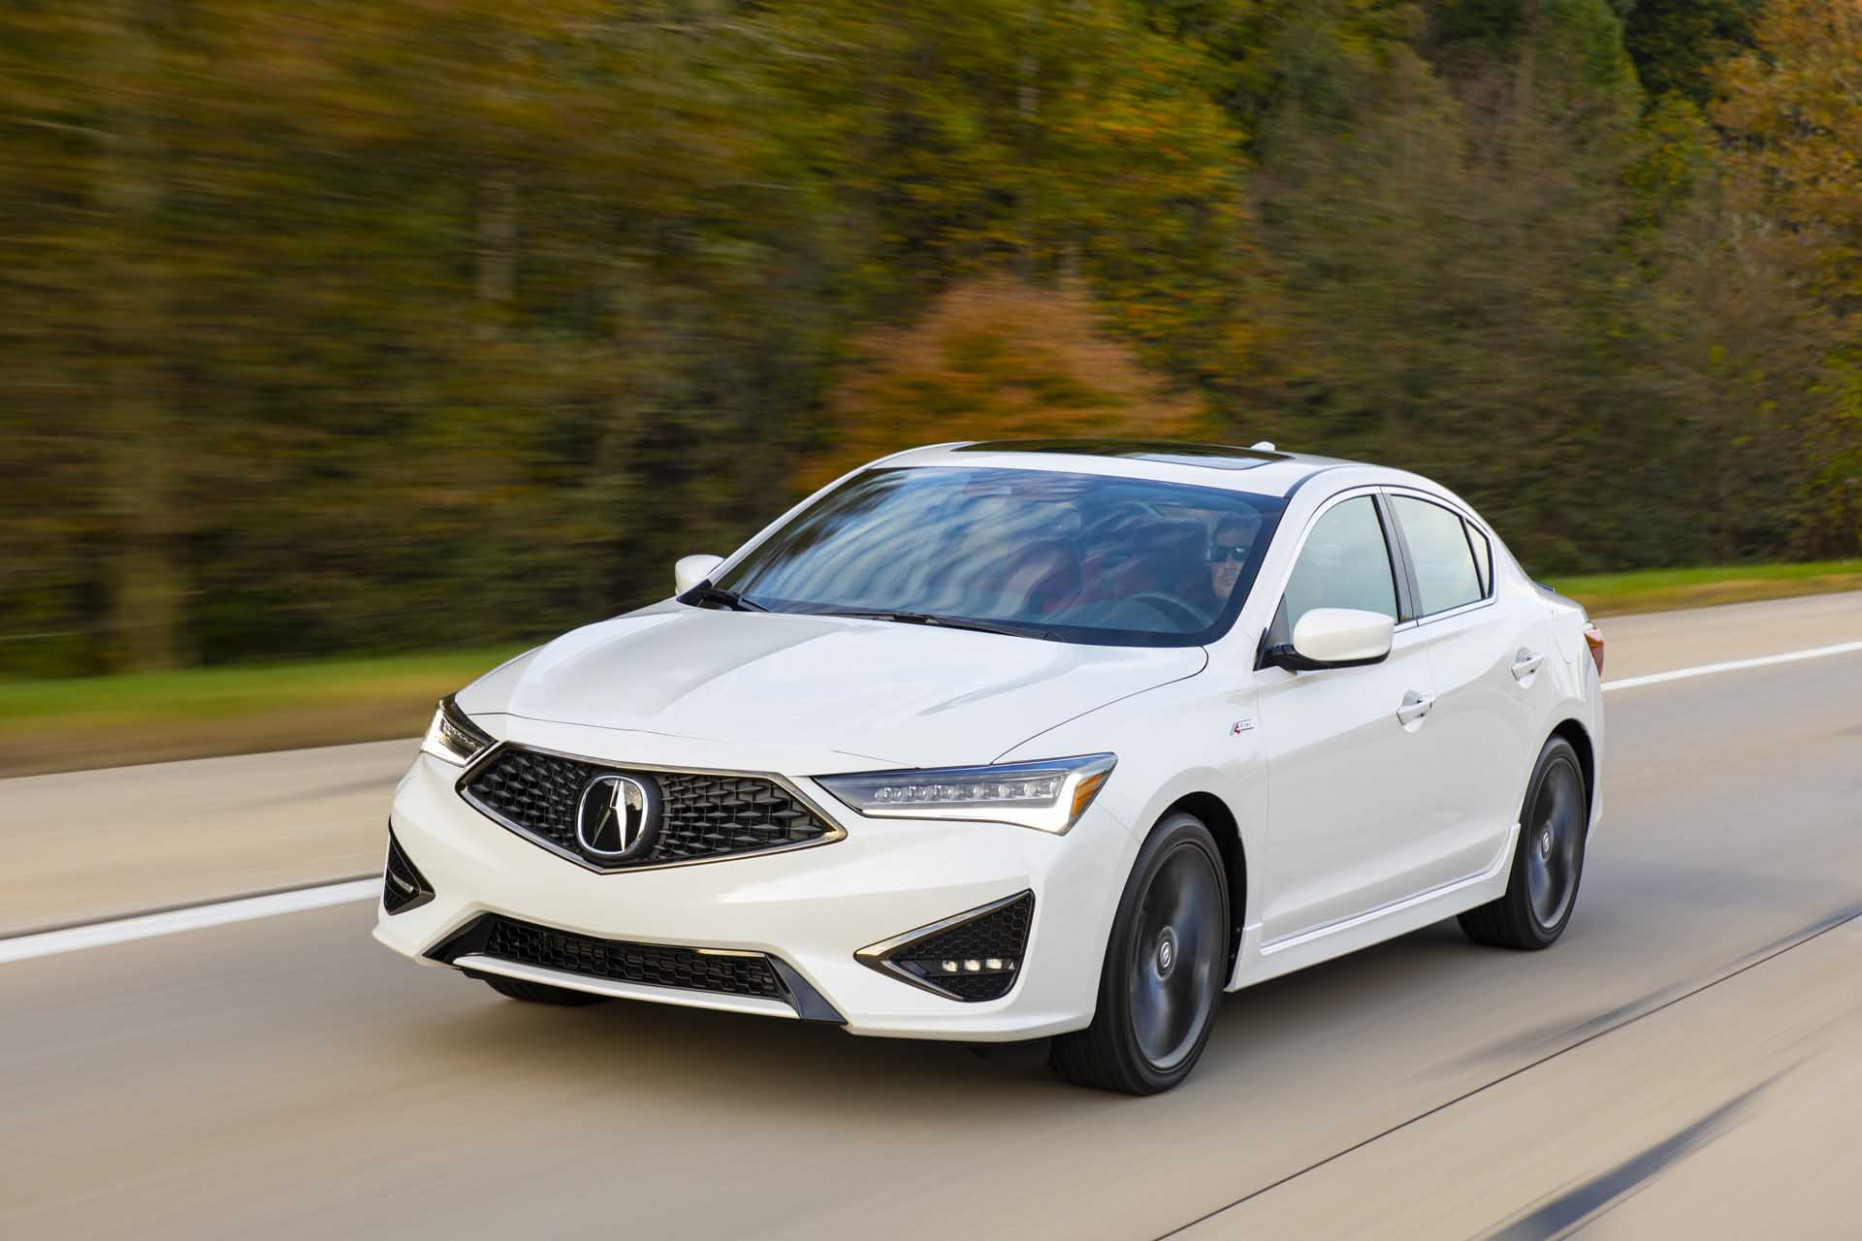 9 Acura ILX Review, Ratings, Specs, Prices, and Photos - The ...